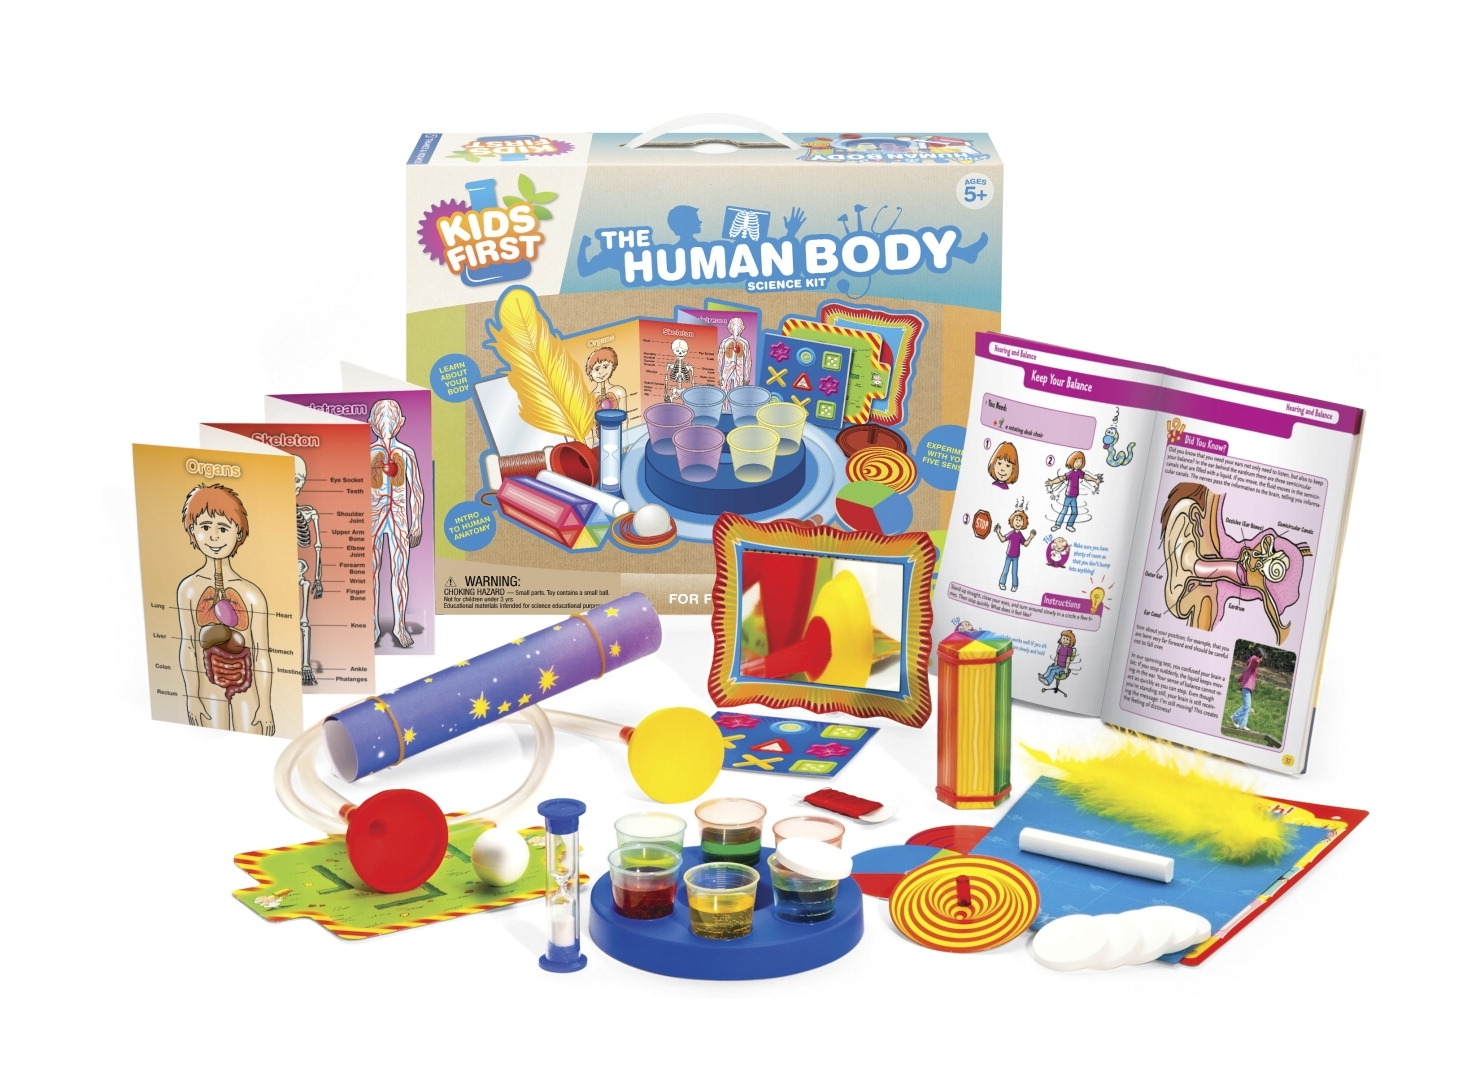 Learning: Science Biology Human Organ Models Human Torso Models - 1539110 - Thames And Kosmos Kids First The Human Body Kit 1539110